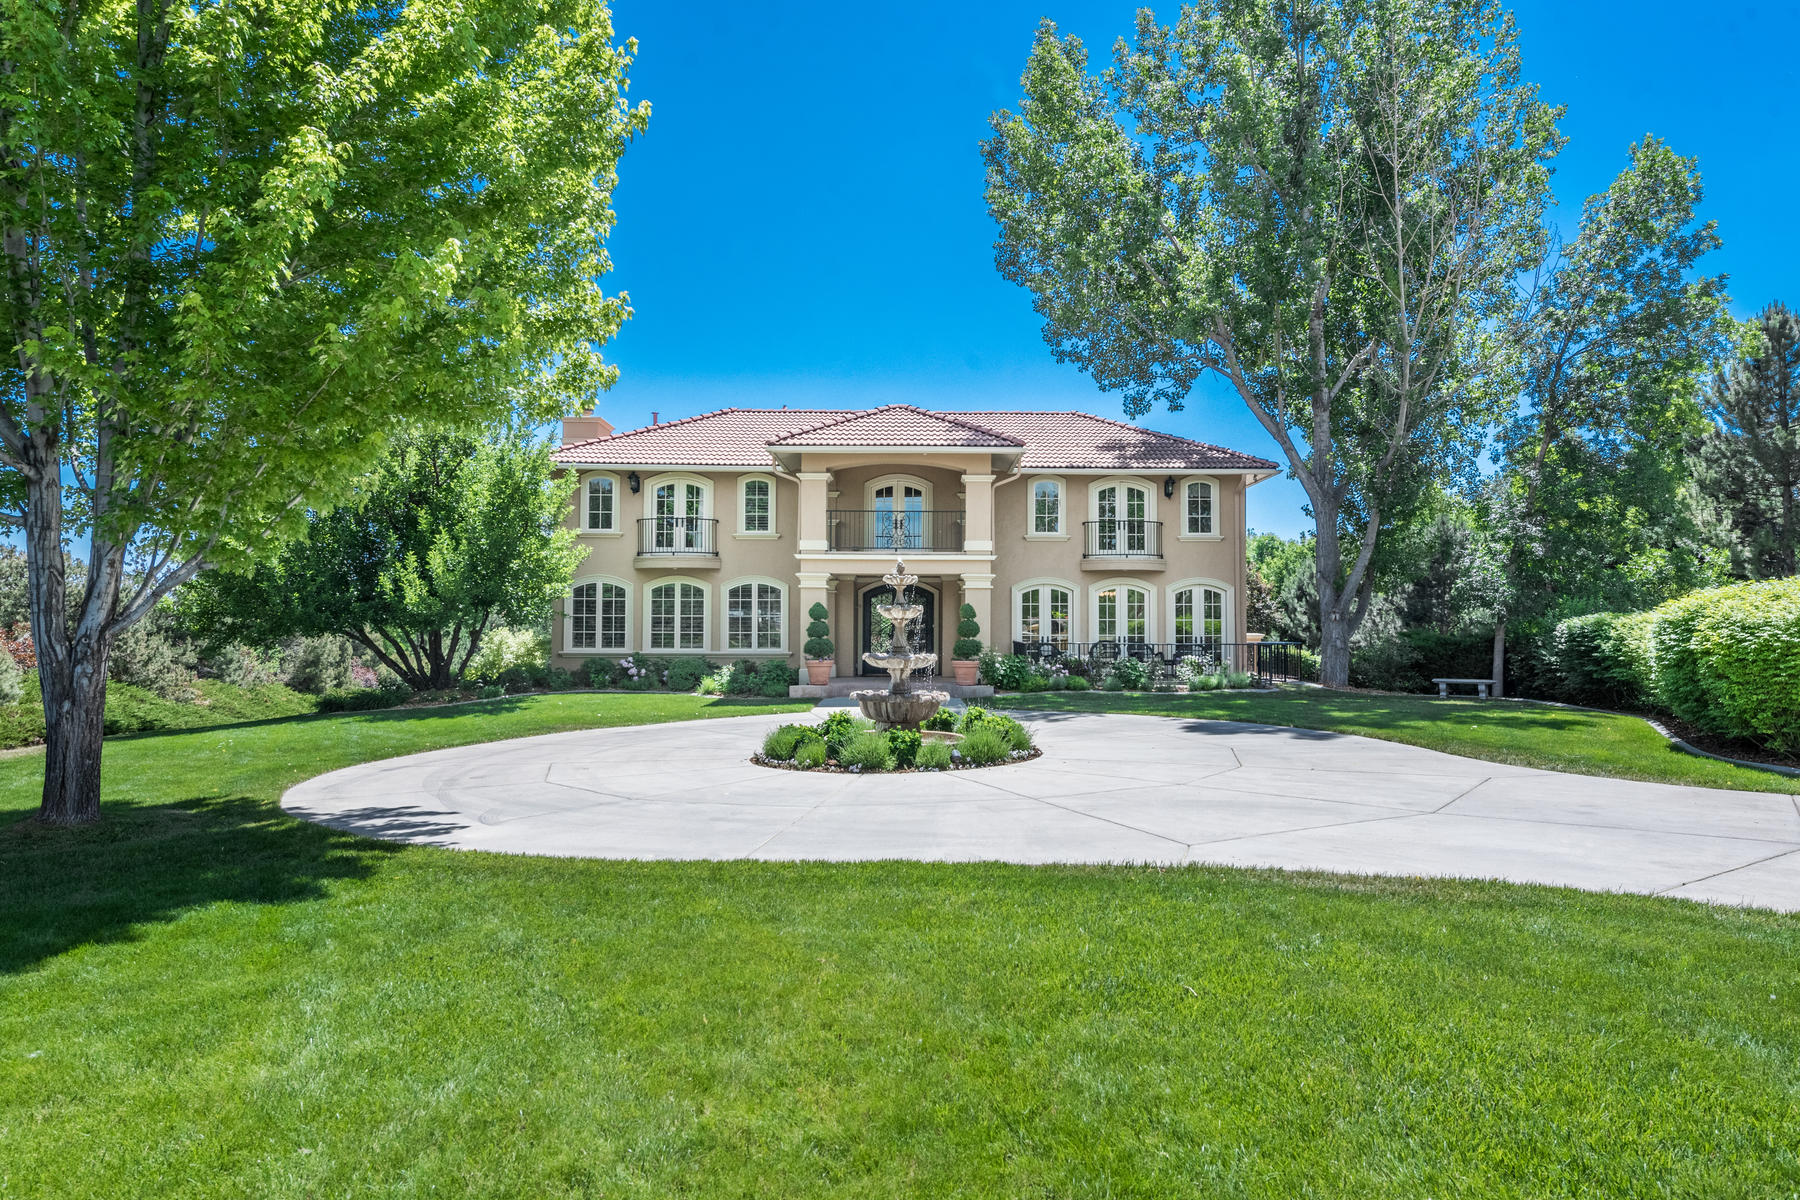 Single Family Home for Active at Exceptional Outdoor Living With This Custom Greenwood Village Home 5816 South Village Way Greenwood Village, Colorado 80121 United States